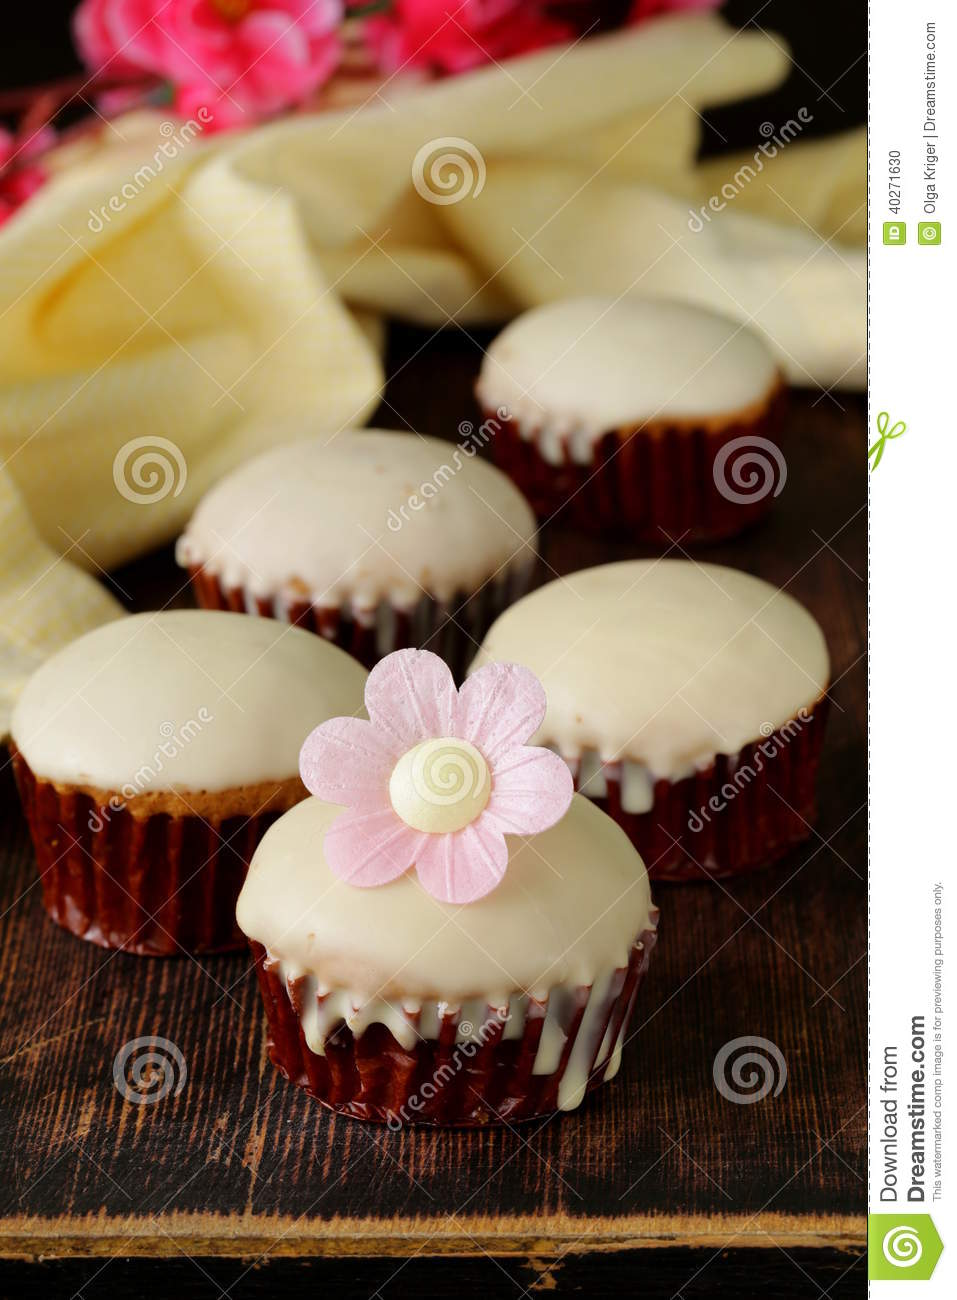 Sweet Cupcakes With Chocolate Stock Photo - Image: 40271630